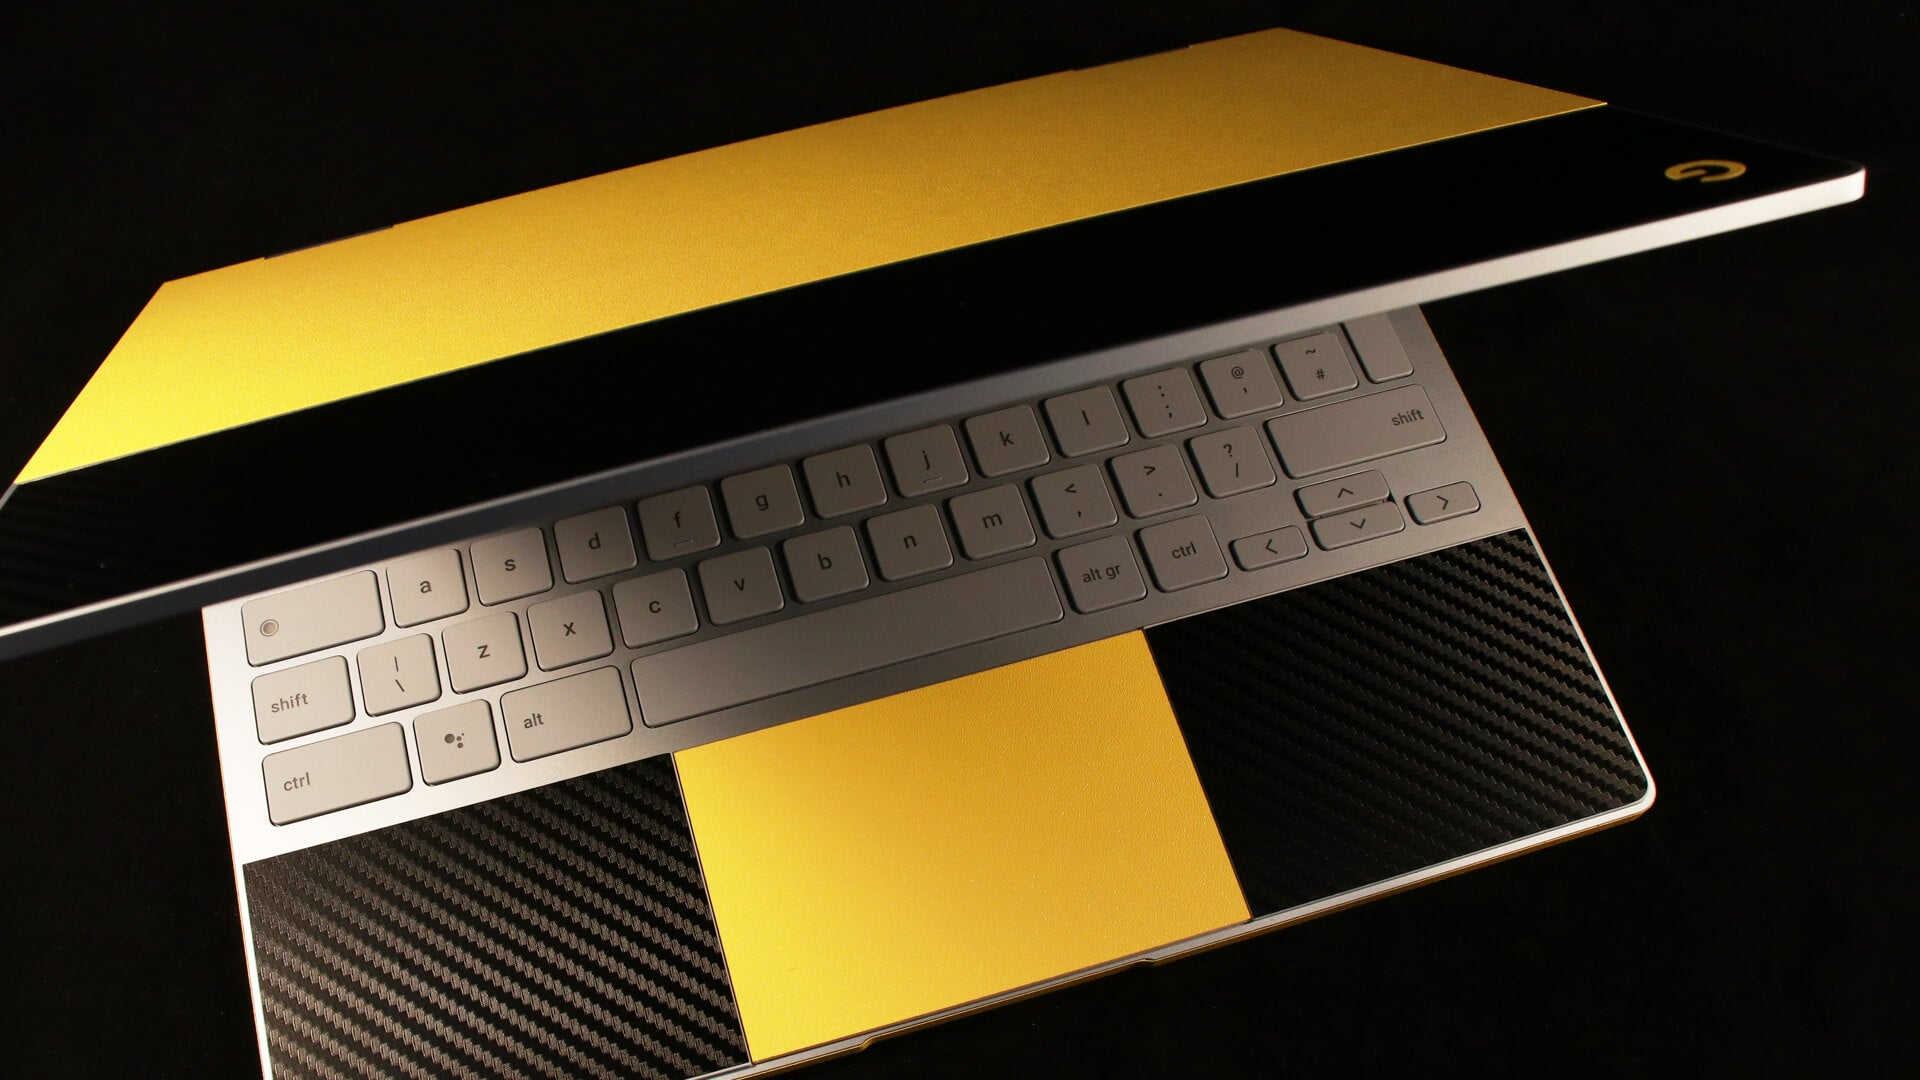 Google Pixelbook True Colour Yellow and Black Carbon Skins